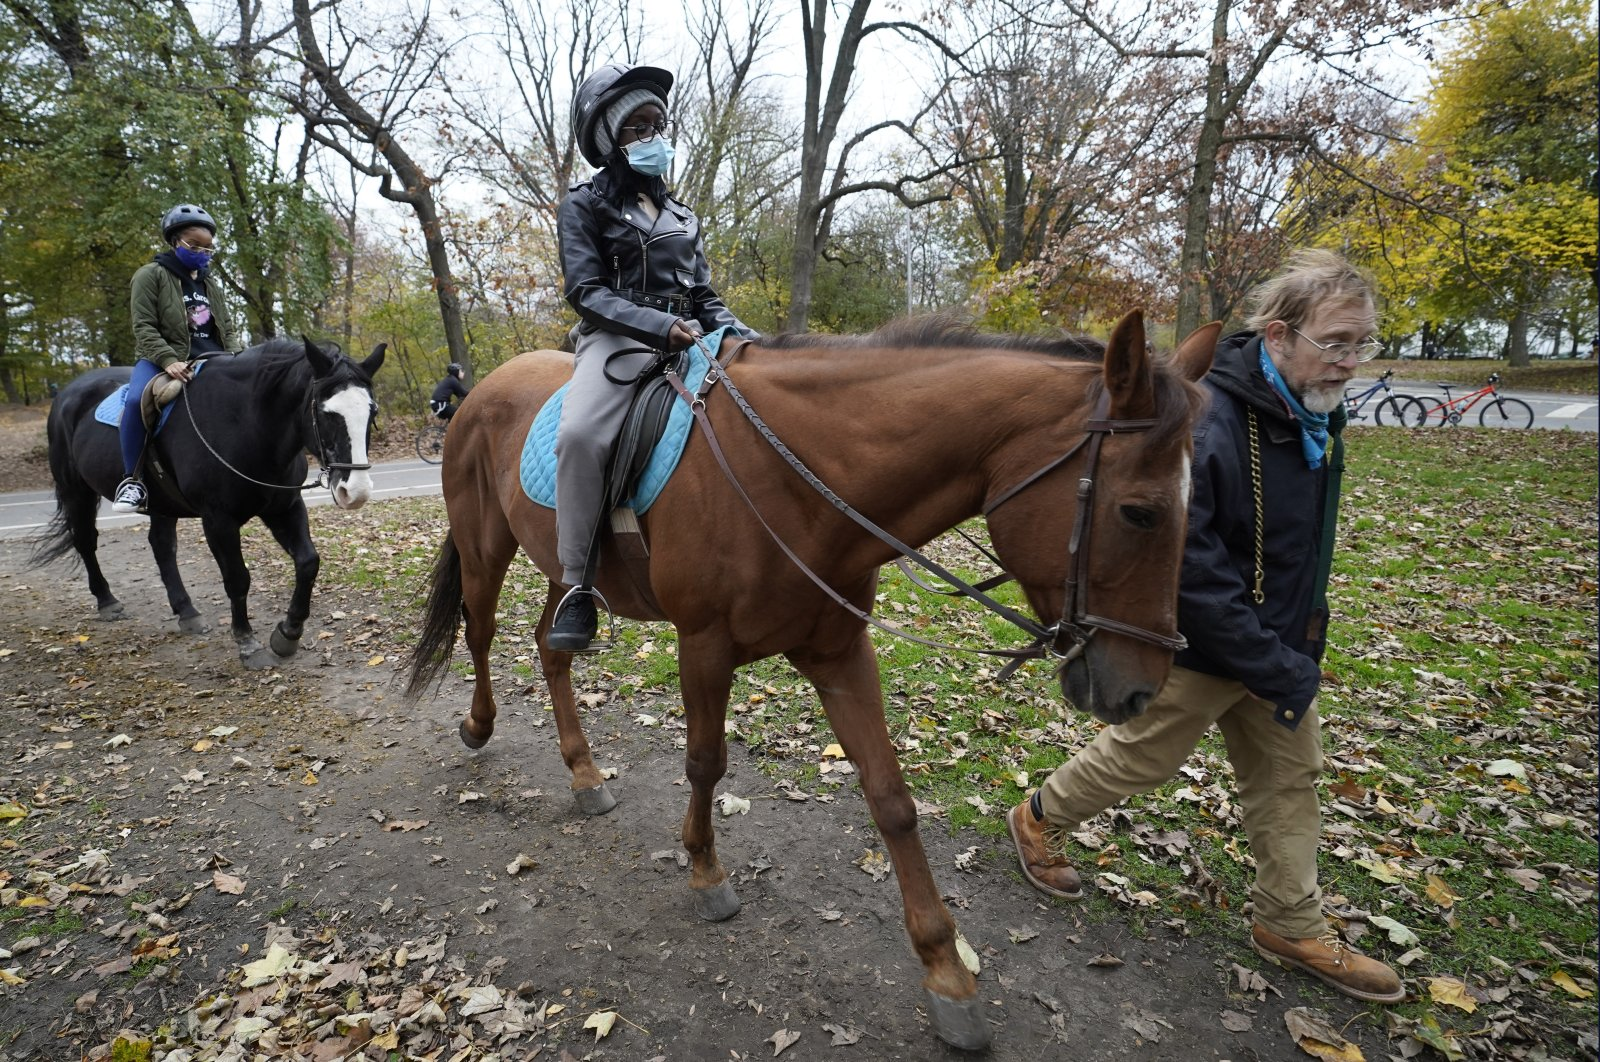 Kensington Stables trail guide Bill Zimmerman leads horseback riders along a bridle path through Prospect Park, Sunday, Nov. 15, 2020, in the Brooklyn borough of New York. (AP File Photo)